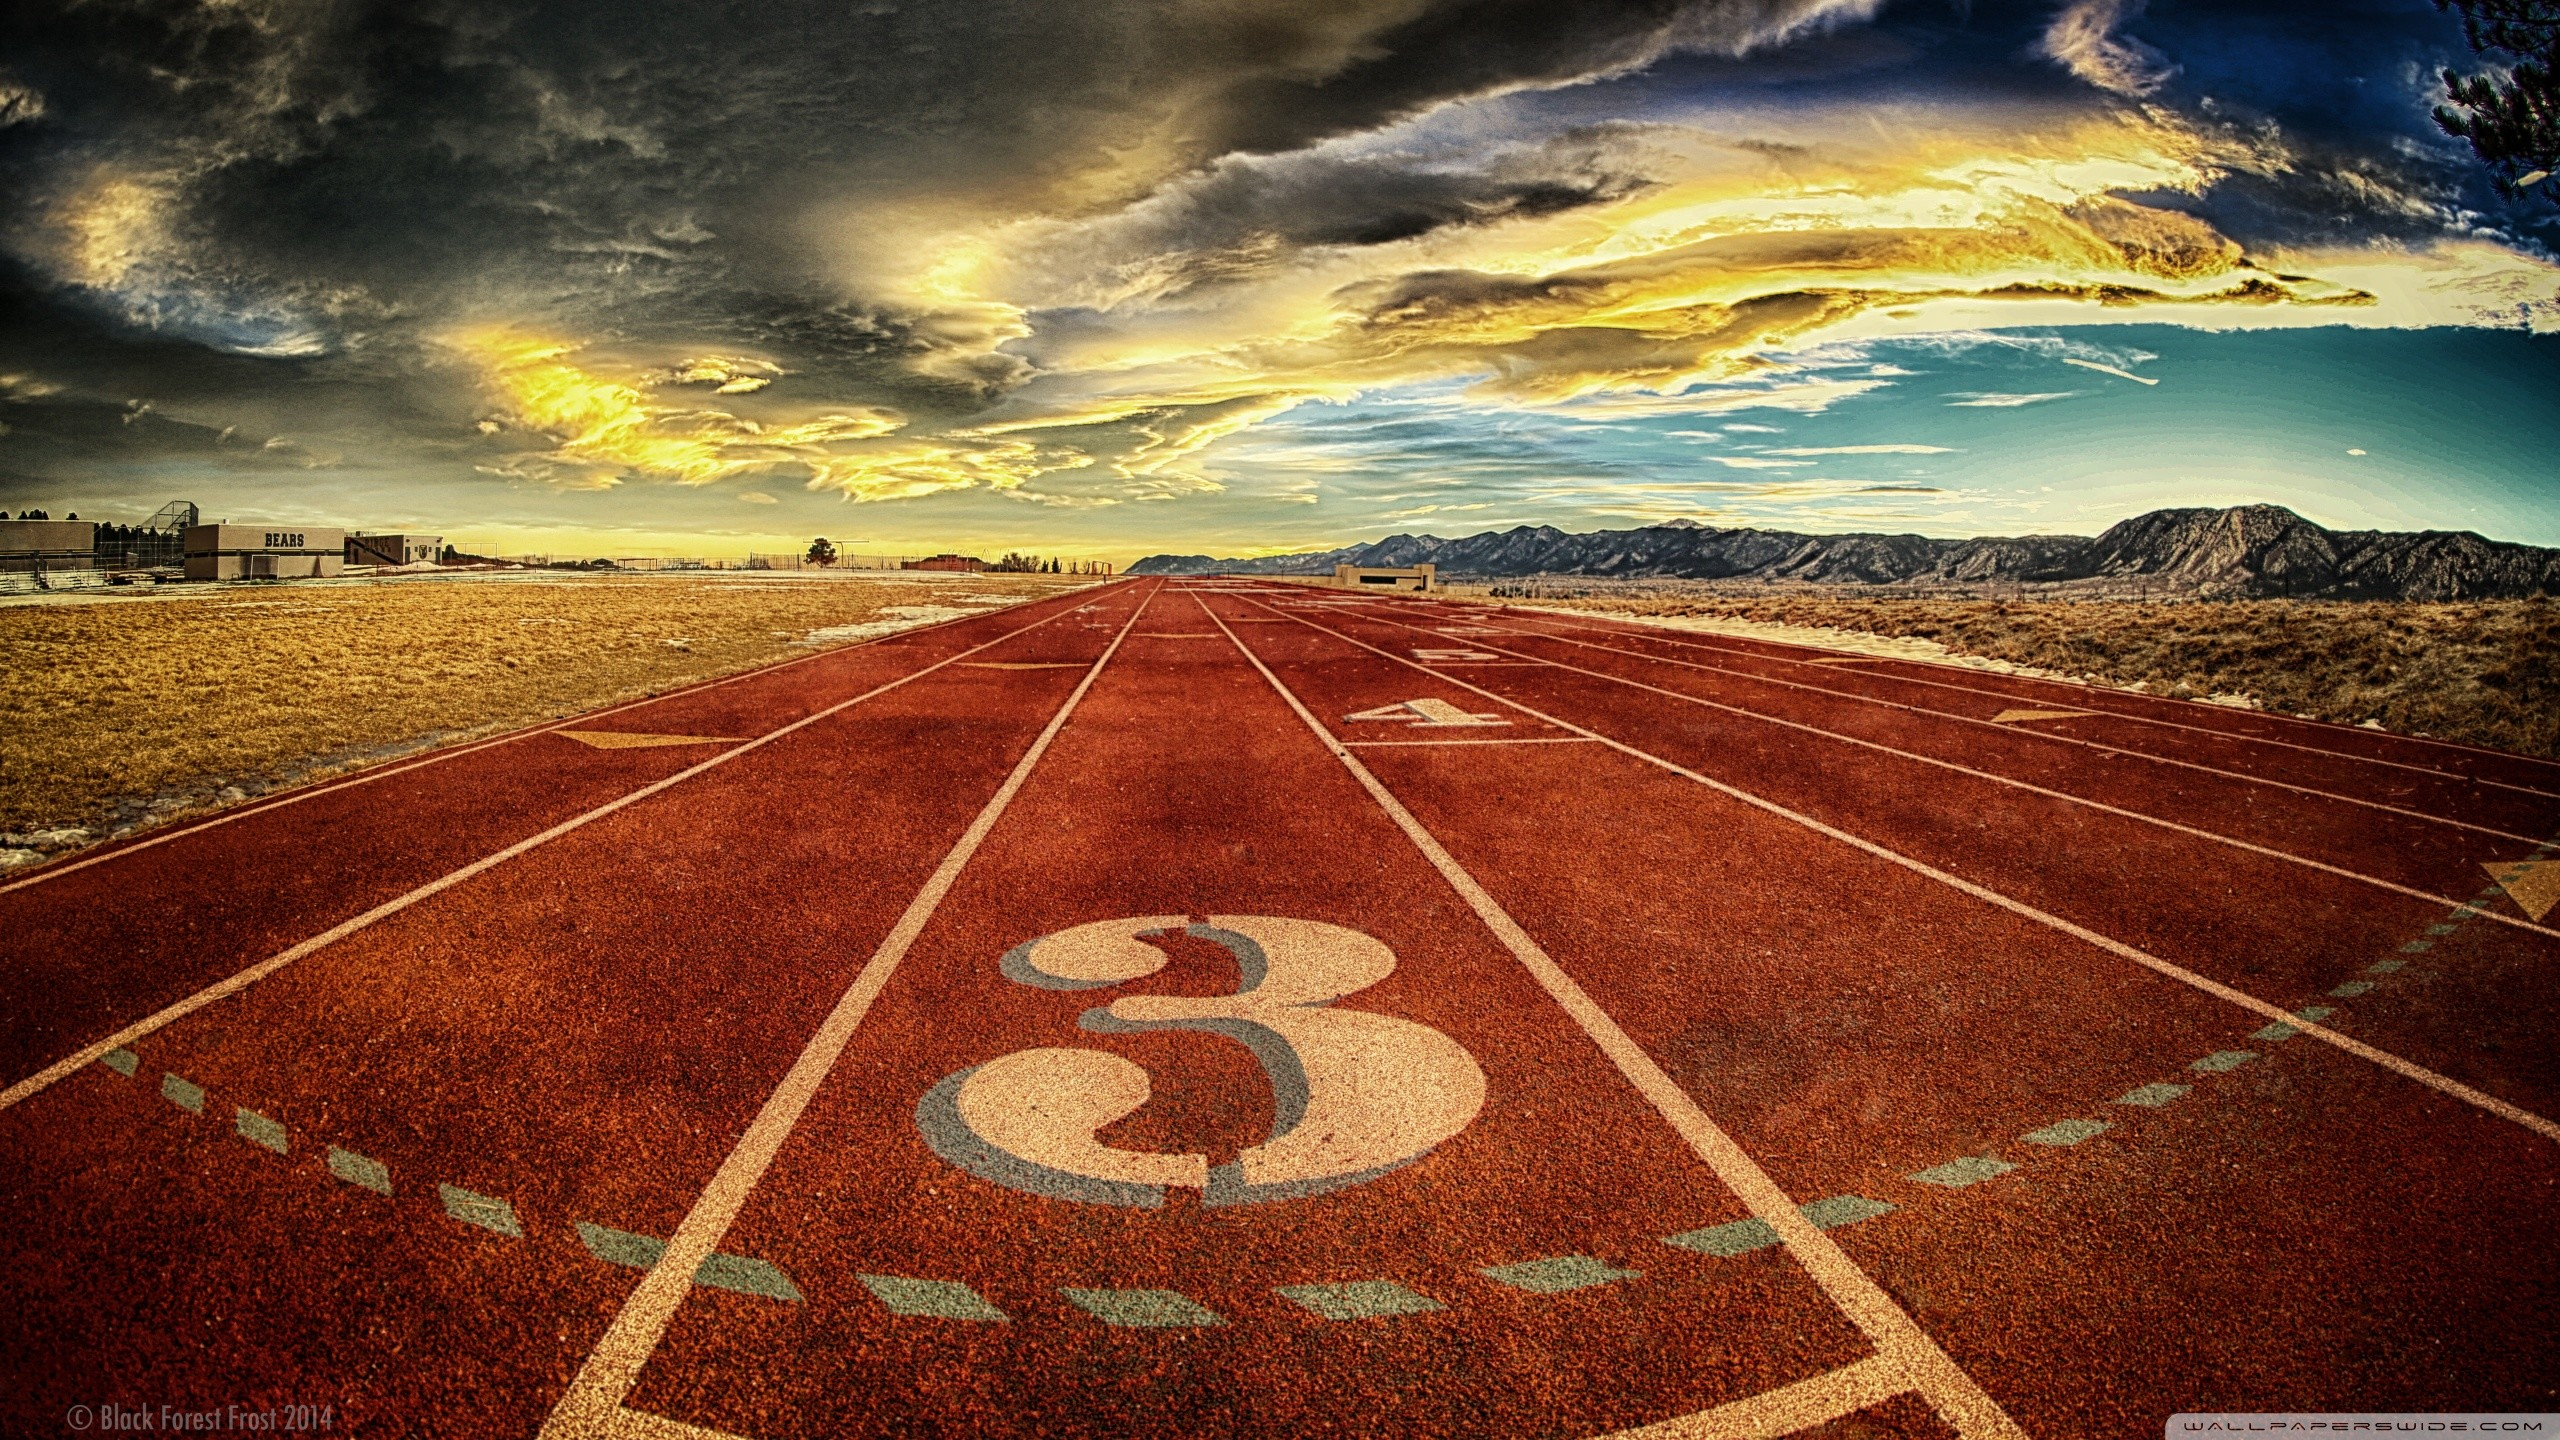 Track and field wallpapers